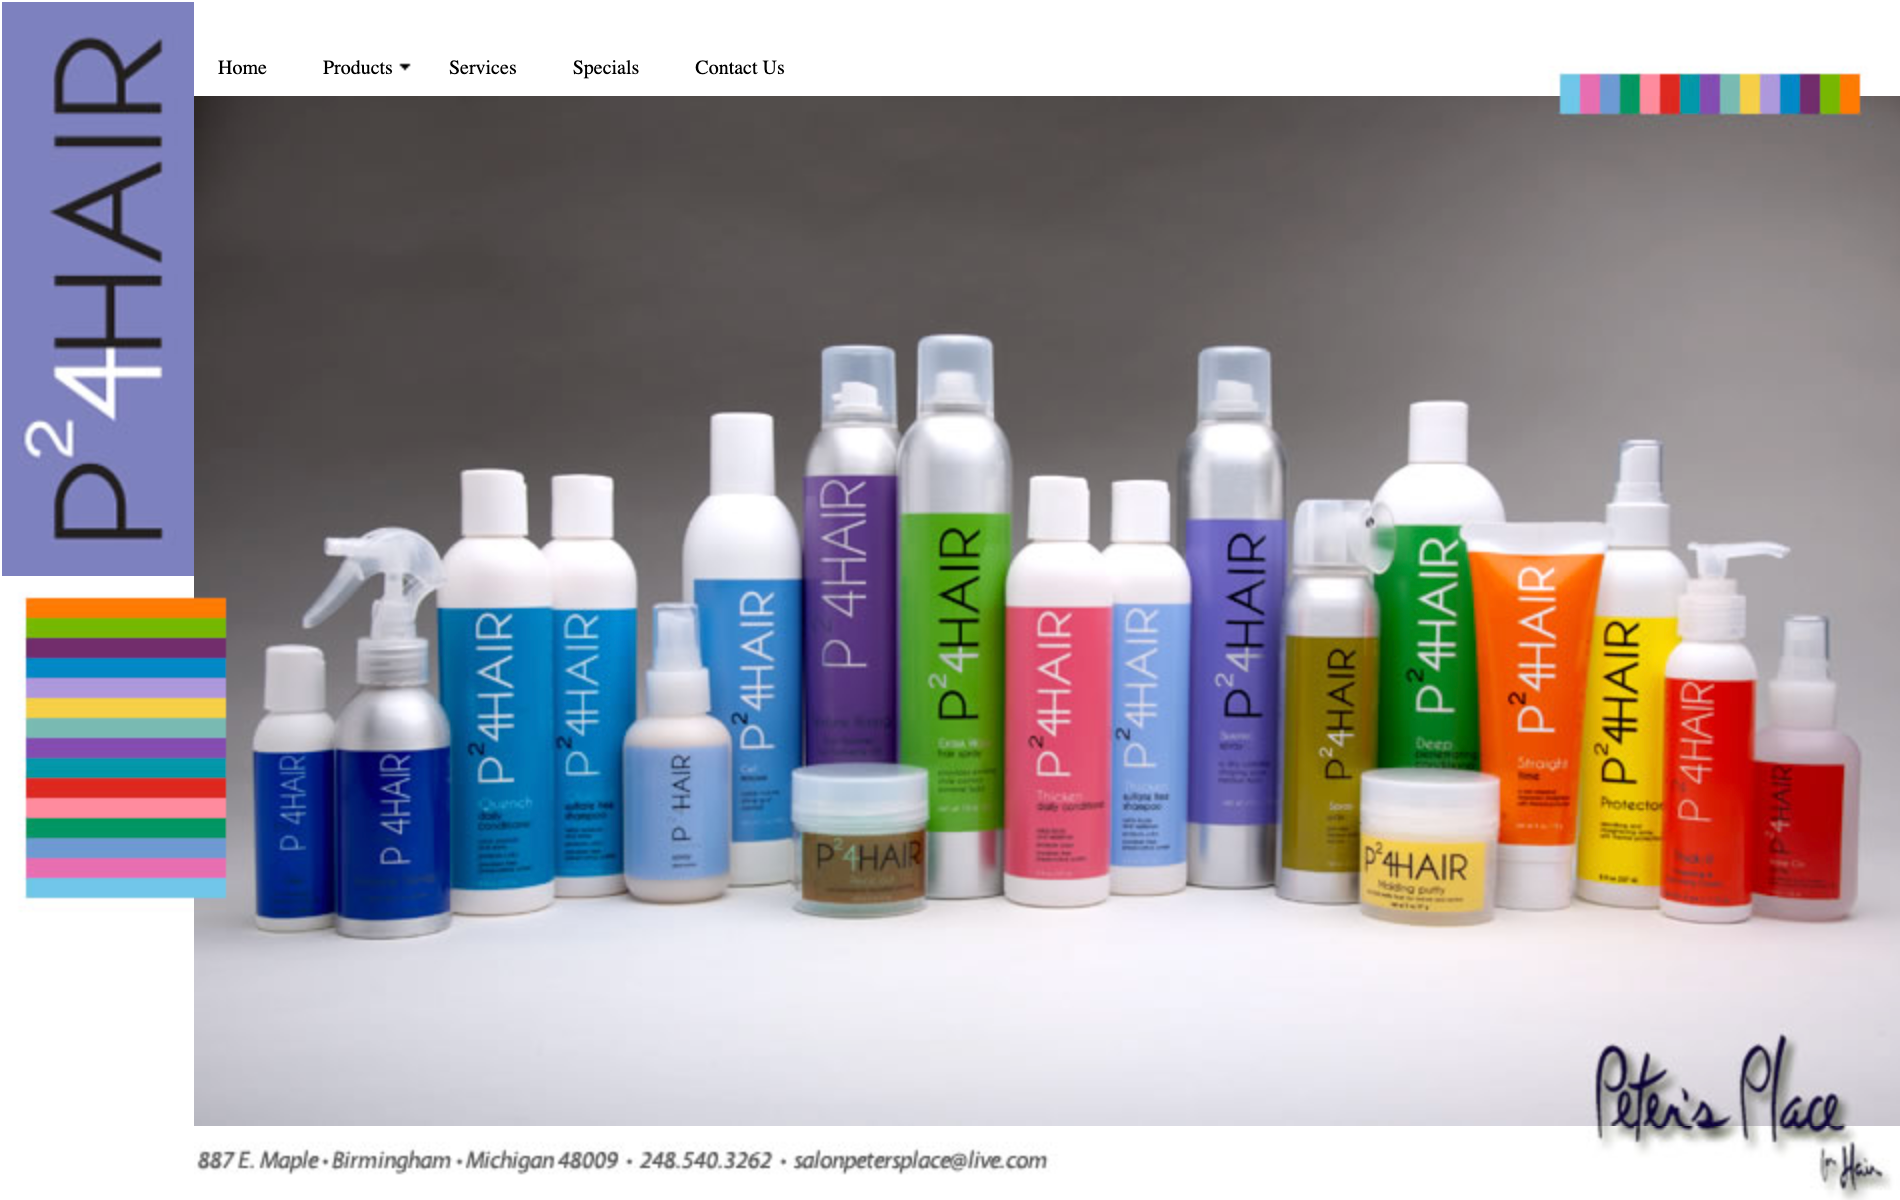 p24hair product lineup